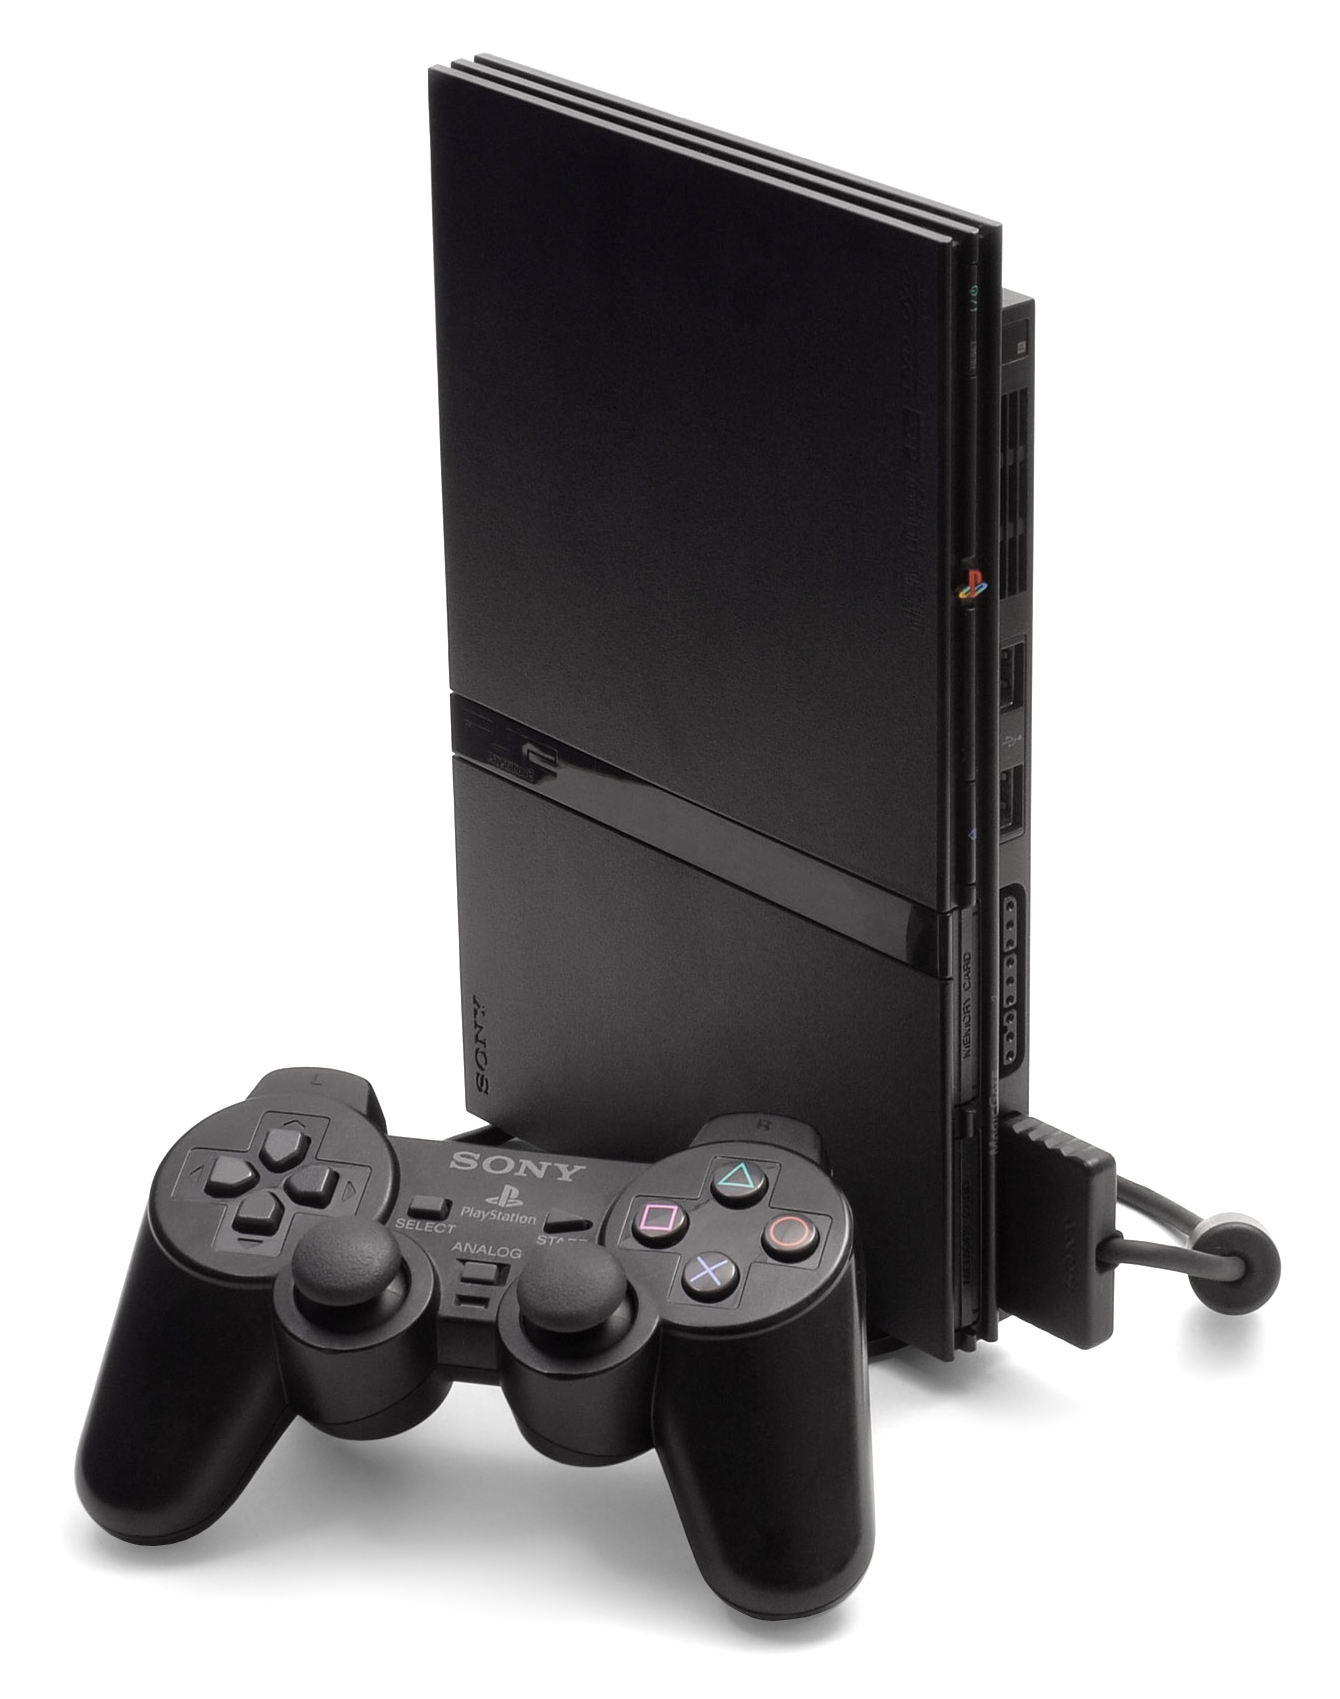 Playstation 2 png. File ps slim console